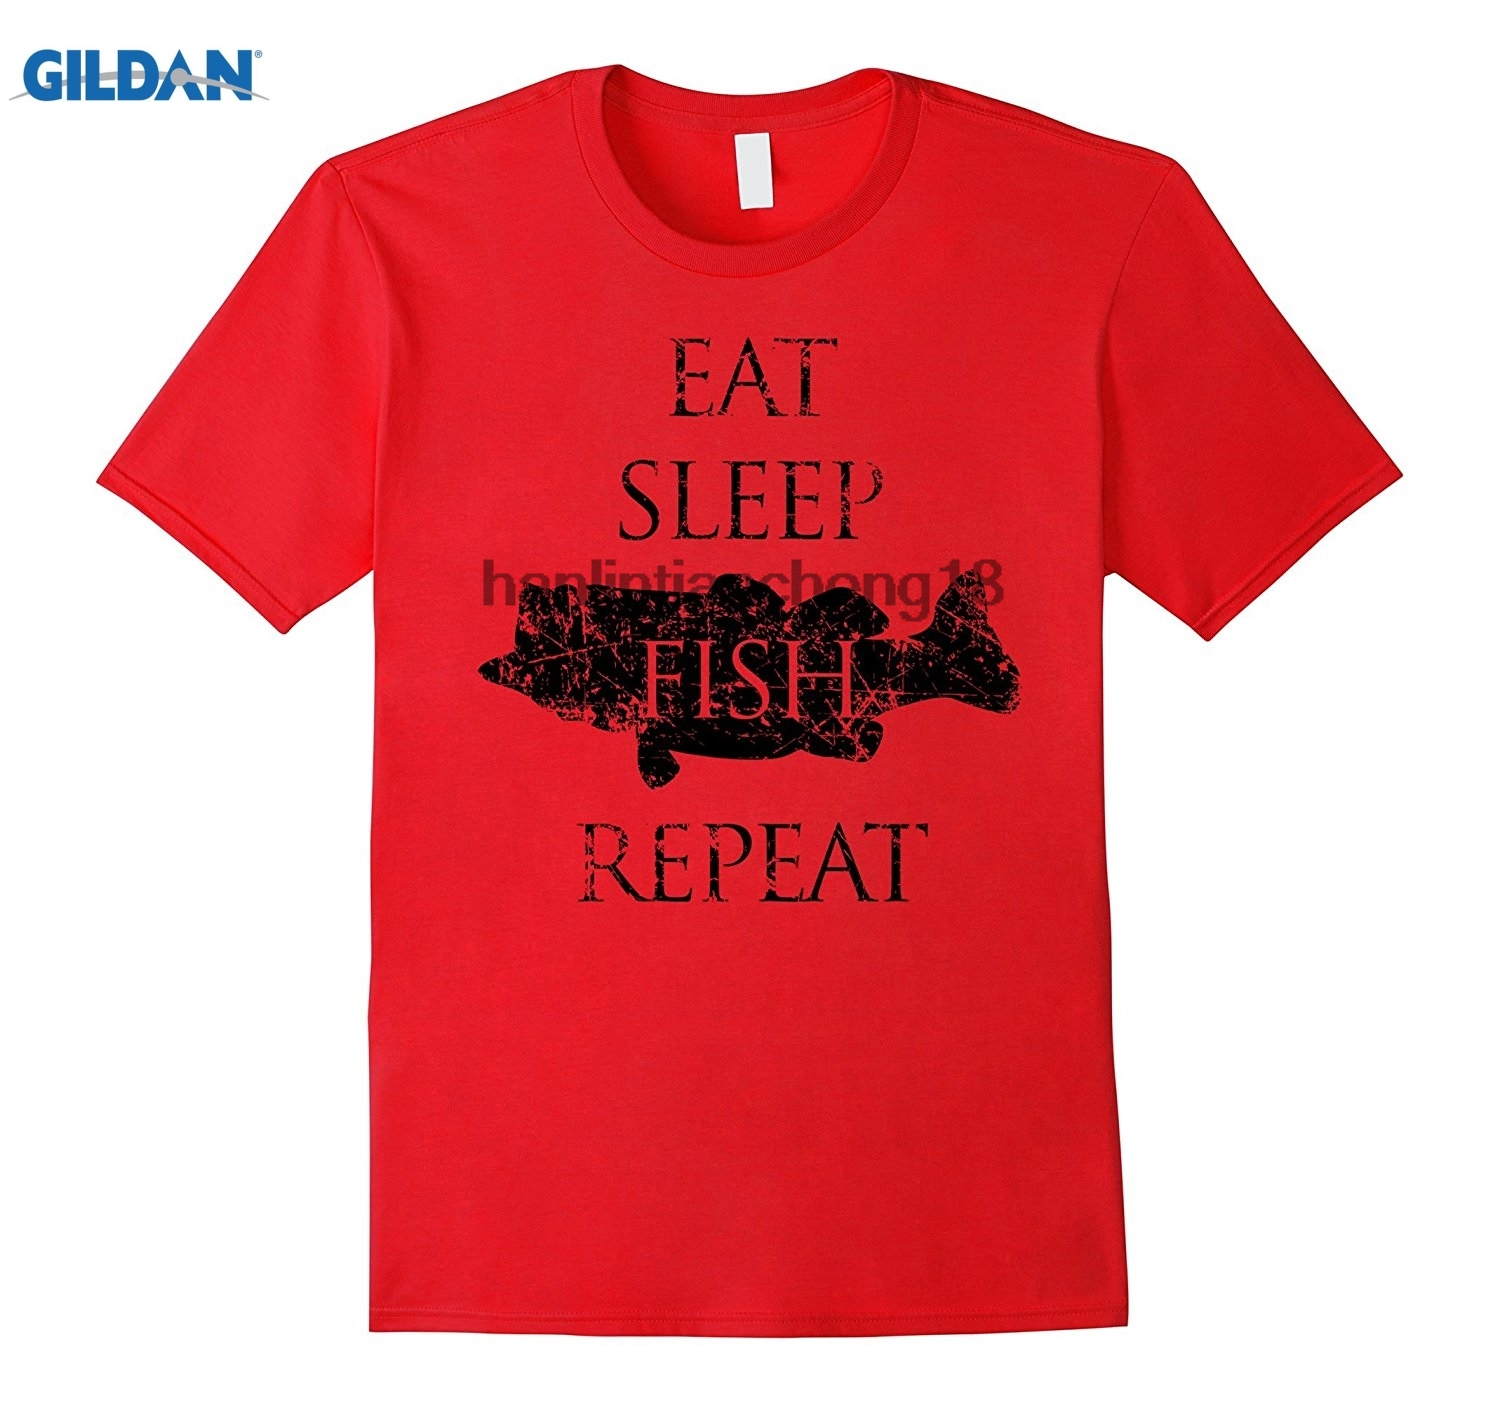 GILDAN 2018 Eat Sleep Fish Repeat Shirt Fathers Day Dad